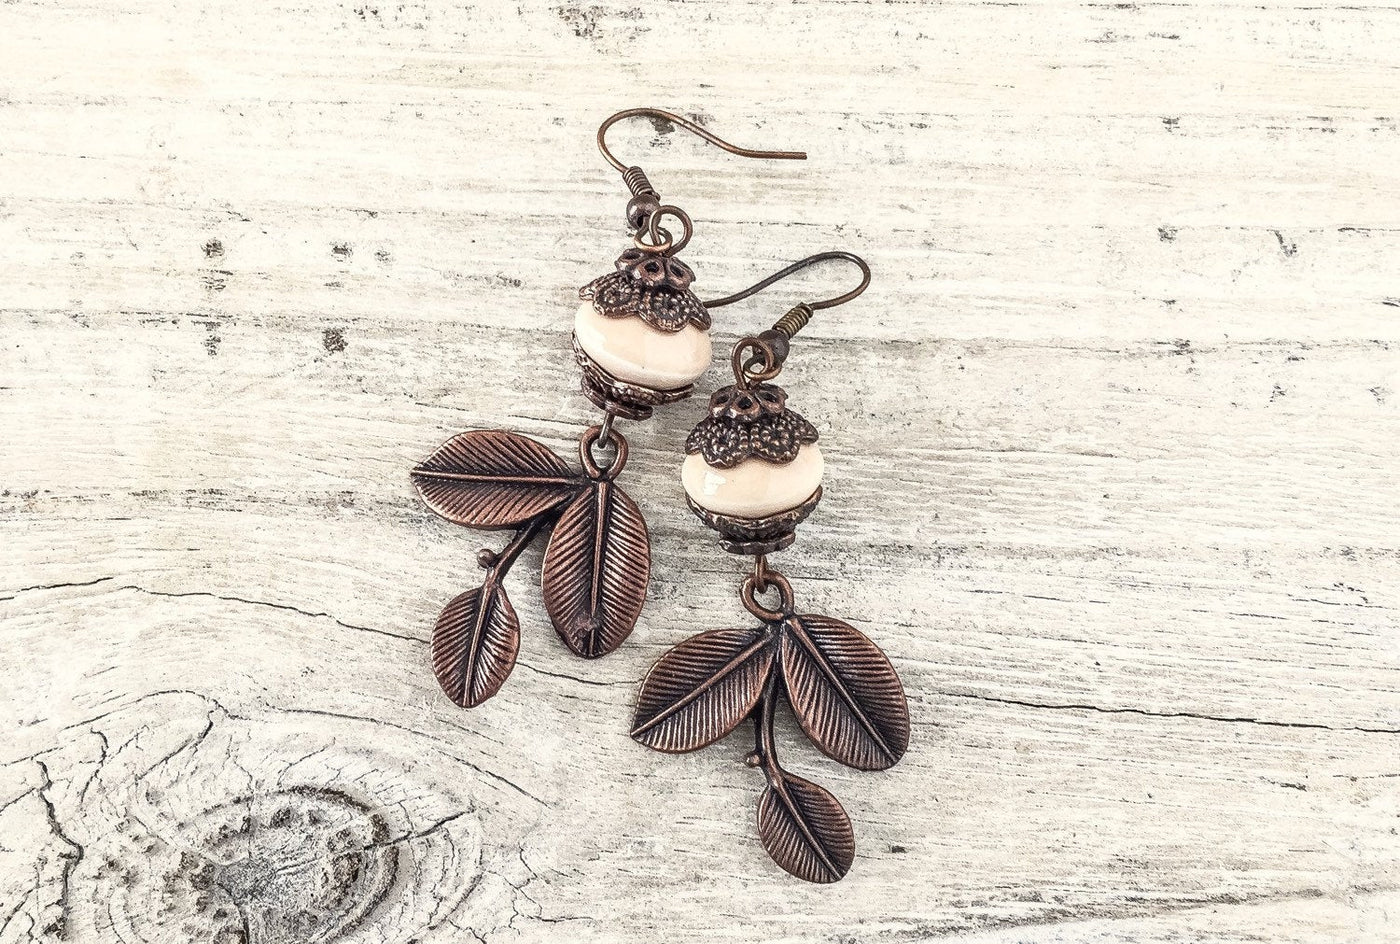 Cream Leaf Earrings, Boho Earrings, Gypsy Earrings, Three Leaf Earrings, Bohemian Earrings, Ceramic Earrings, E120